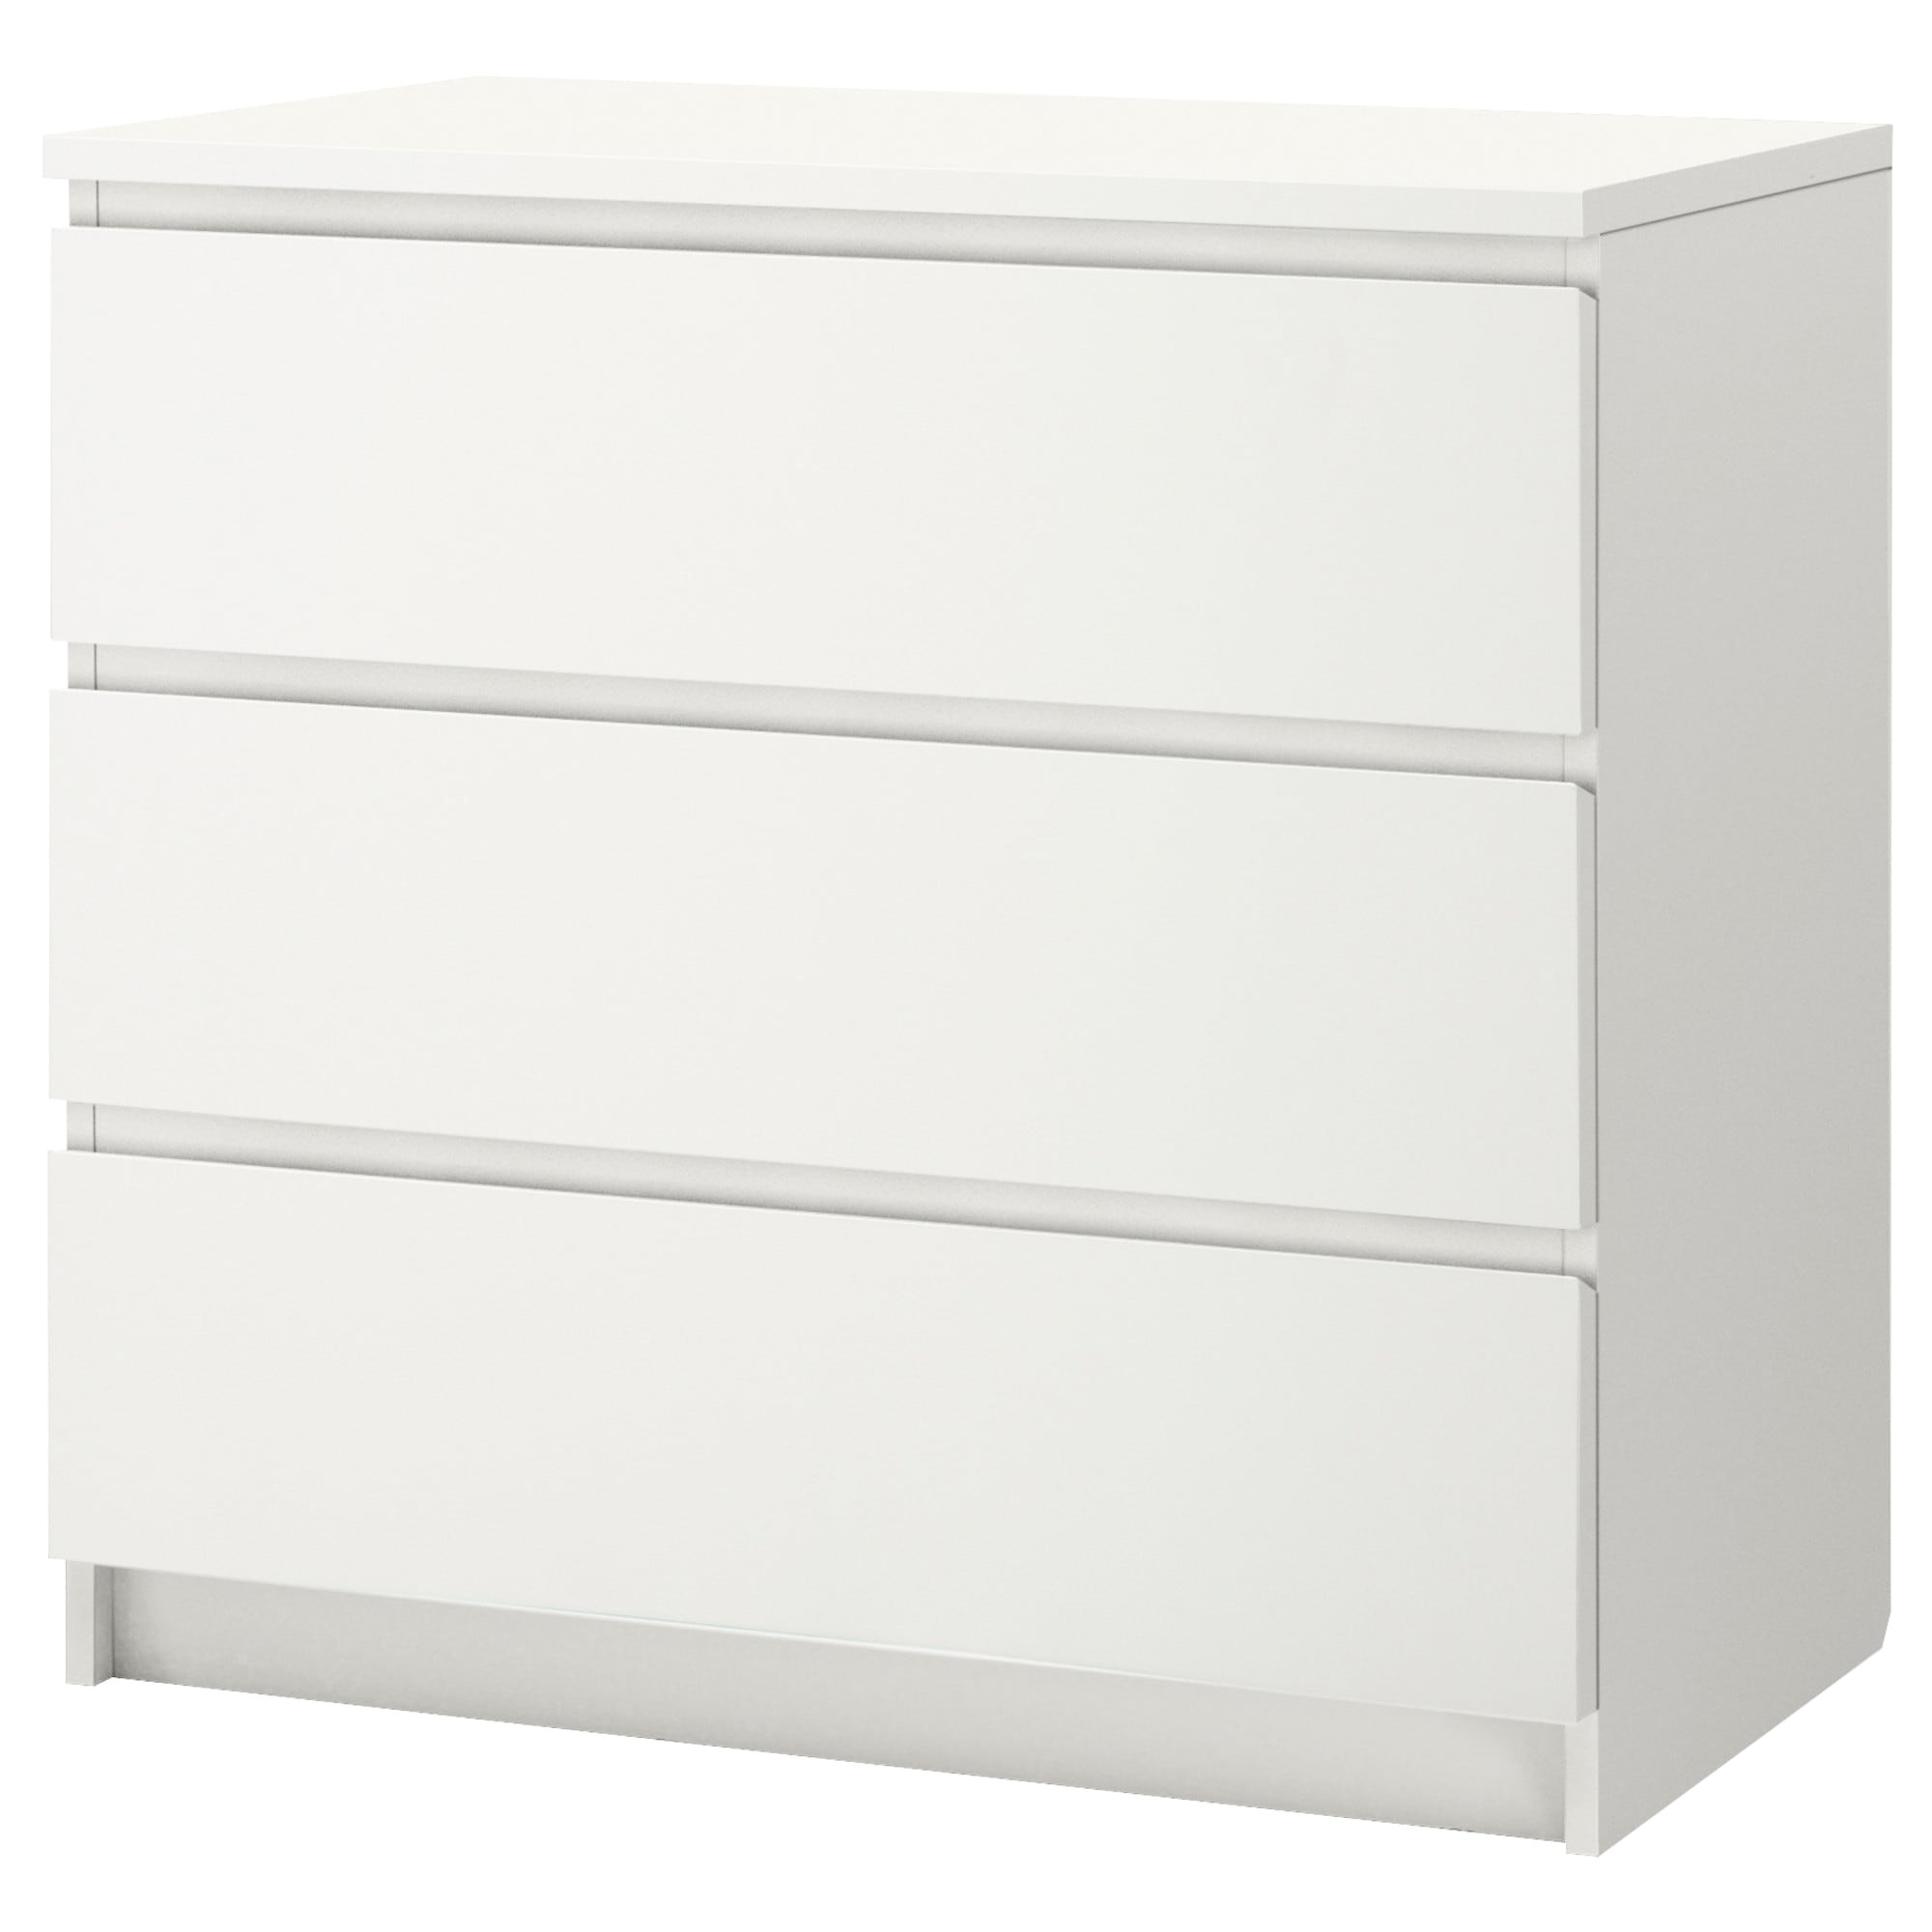 Ikea Malm Storage Bed Review Malm Chest Of 3 Drawers White 80 X 78 Cm Ikea